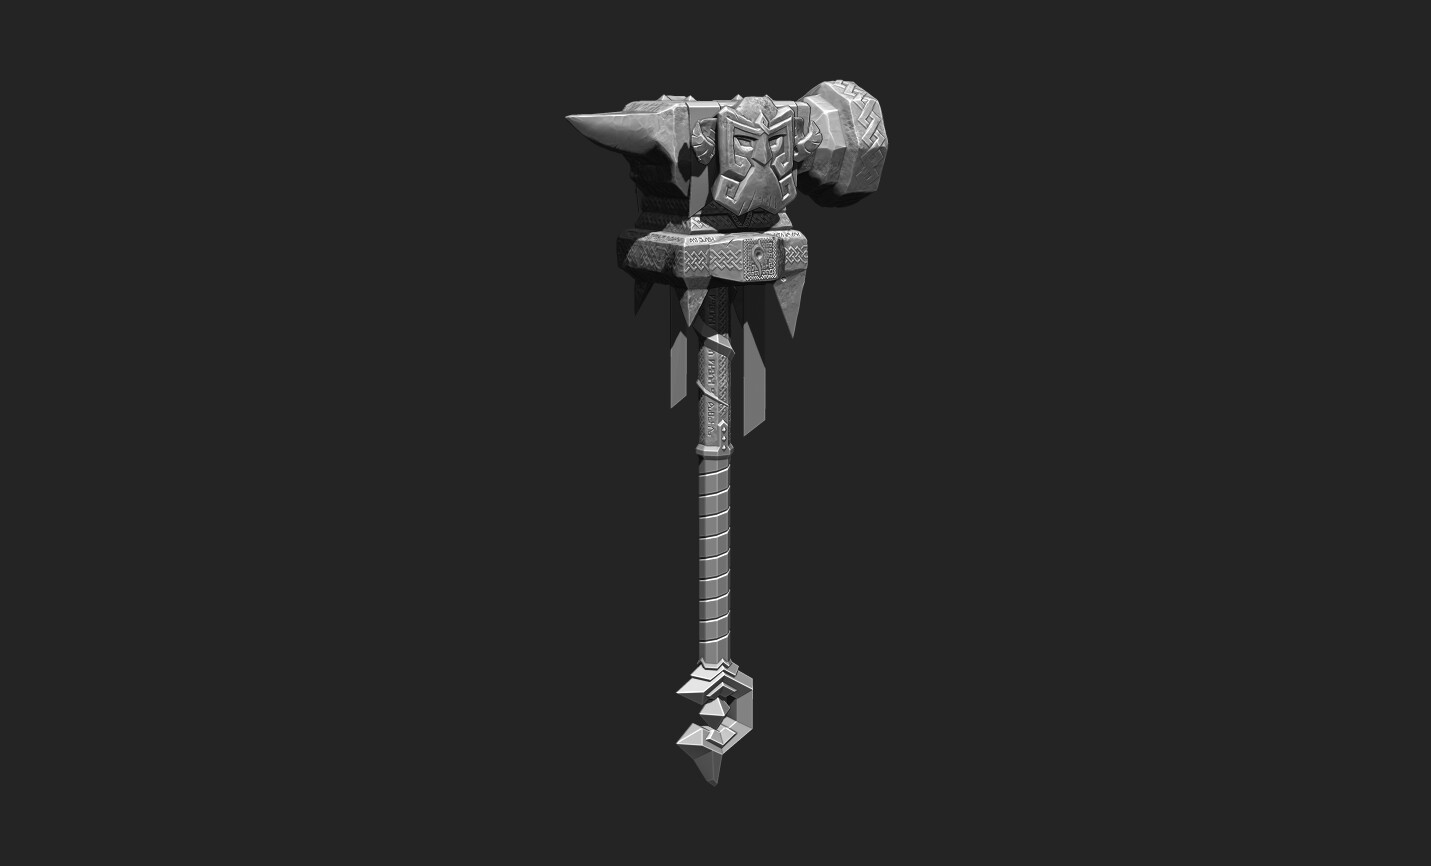 ZBrush decimated high-poly sculpts